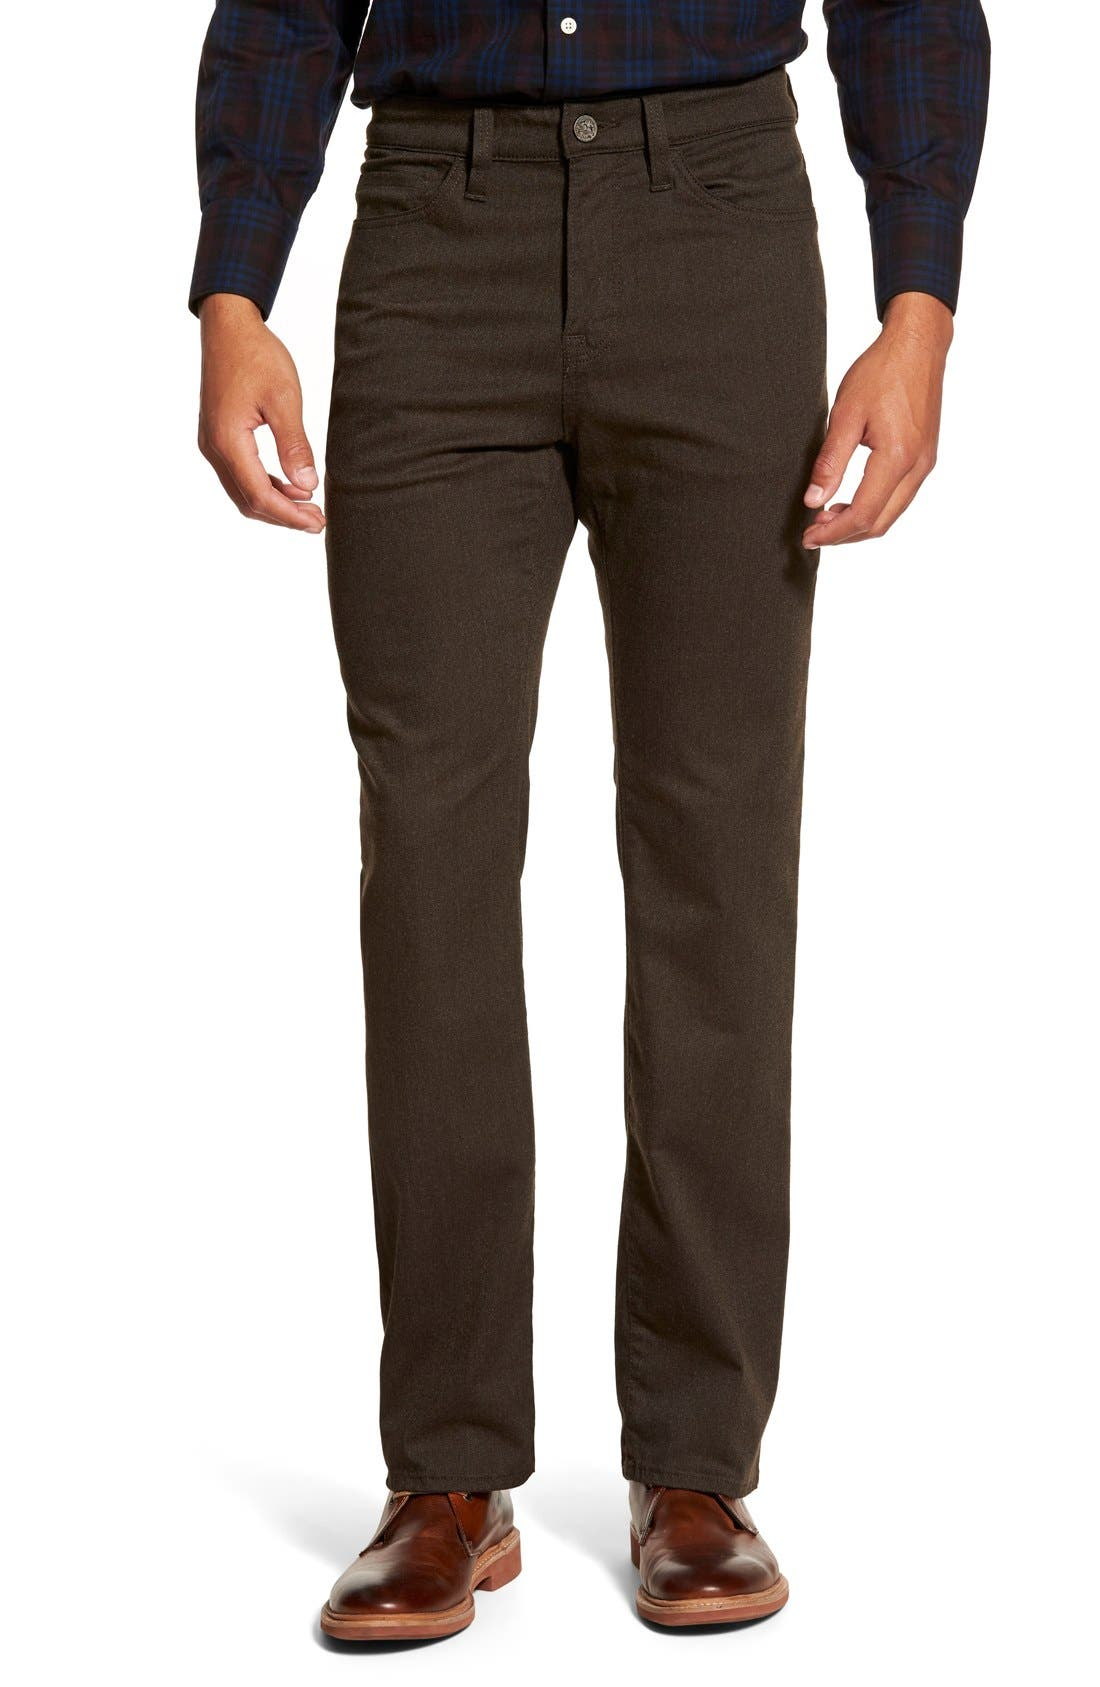 34 Heritage 'Charisma' Relaxed Fit Jeans (Mocca Luxe)